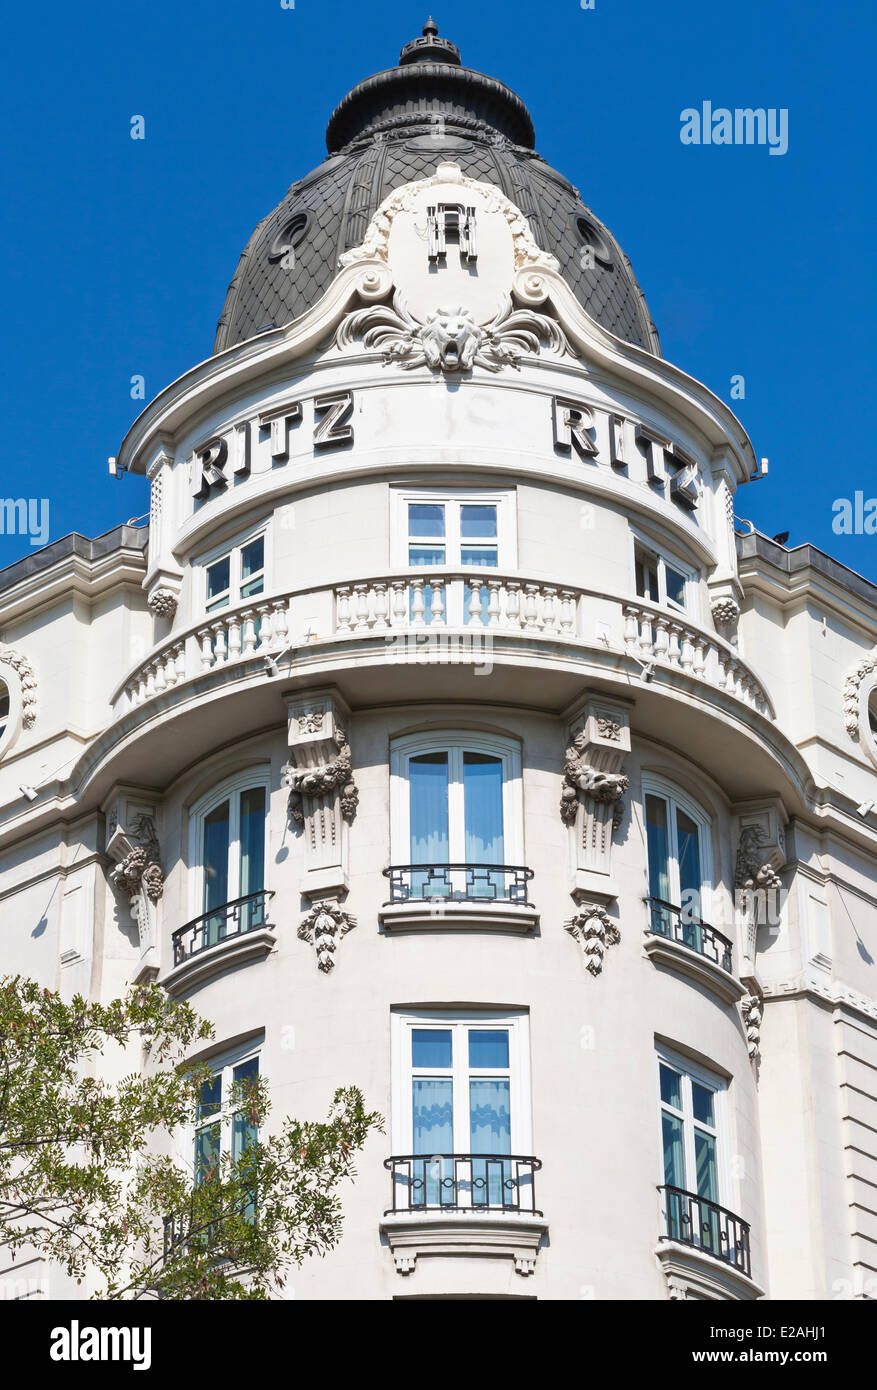 Spain, Madrid, Ritz Hotel opened by King Alfonso XIII in 1910 - Stock Image